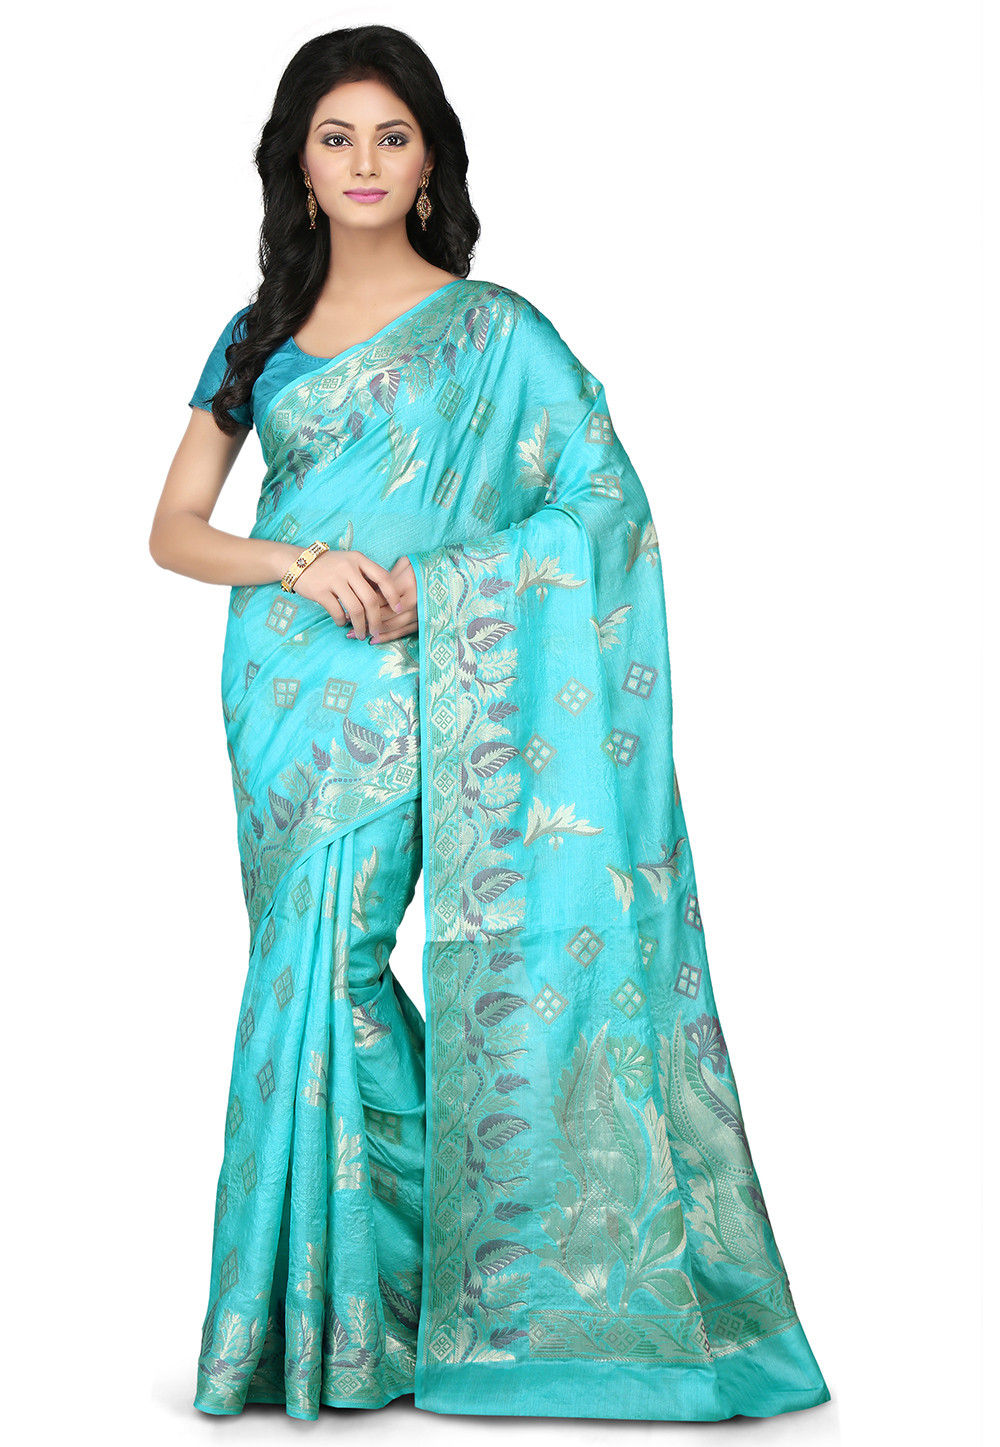 Woven Pure Tussar Silk Saree in Turquoise